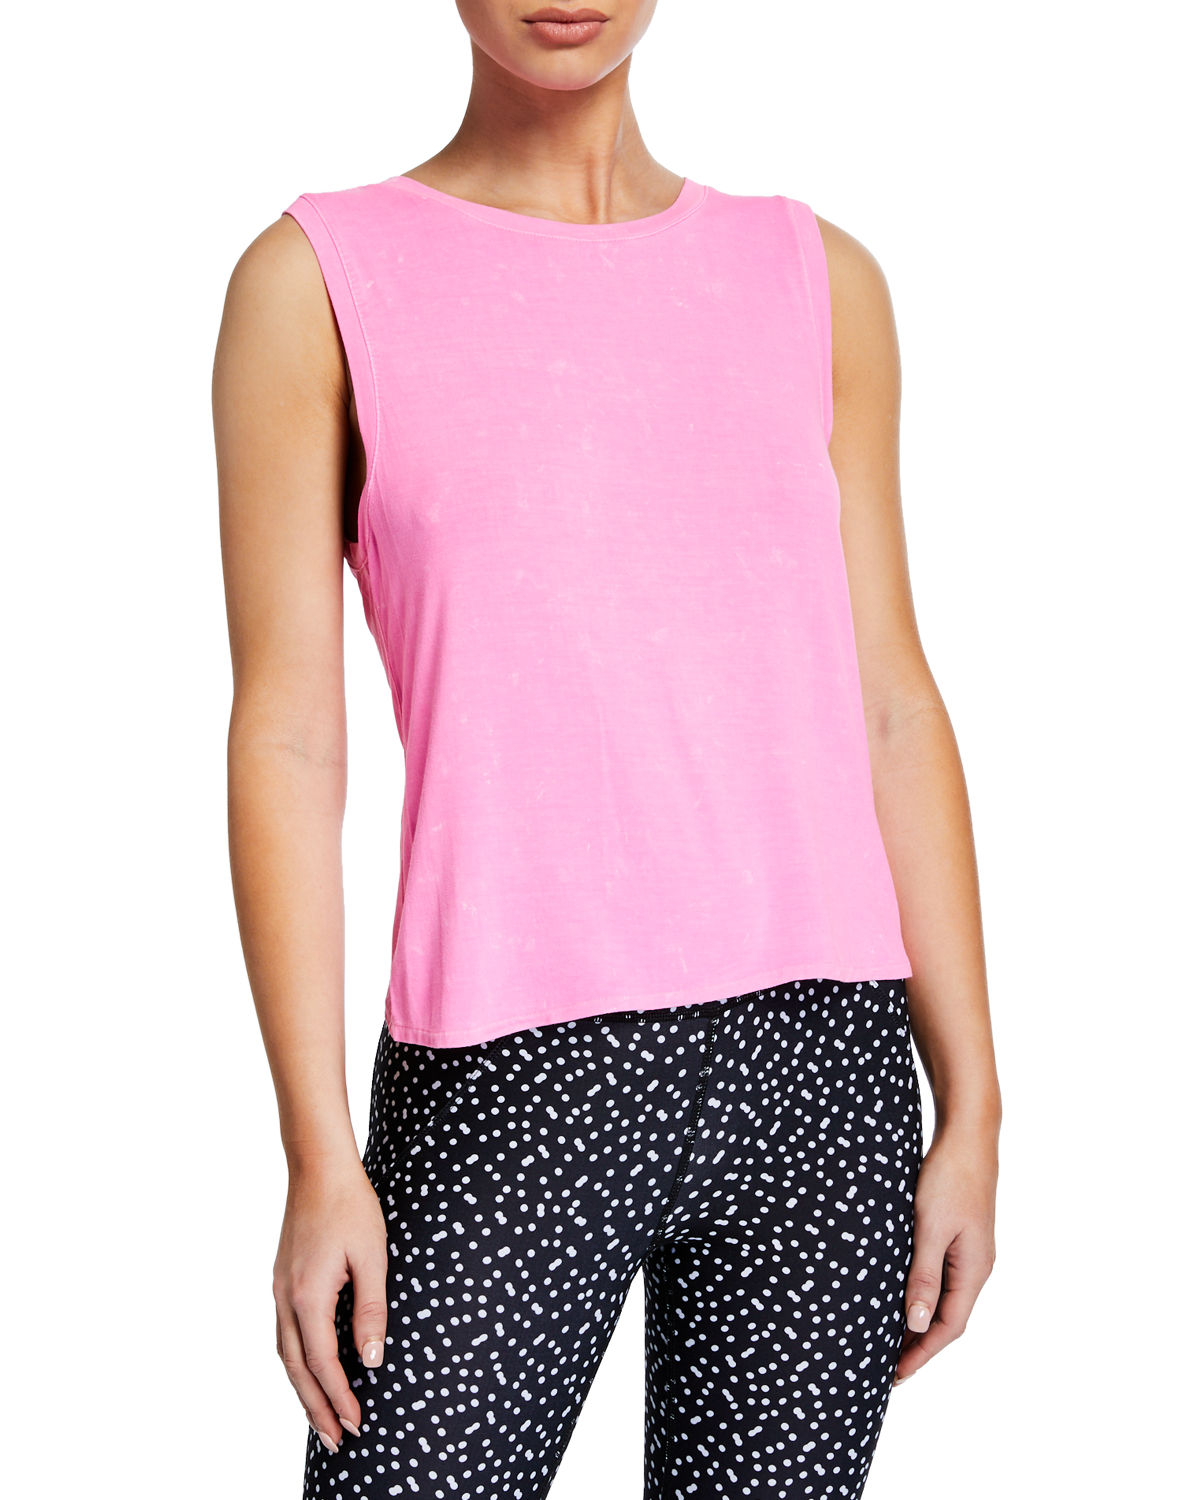 Betsey Johnson BLEACH-EFFECT MUSCLE TANK